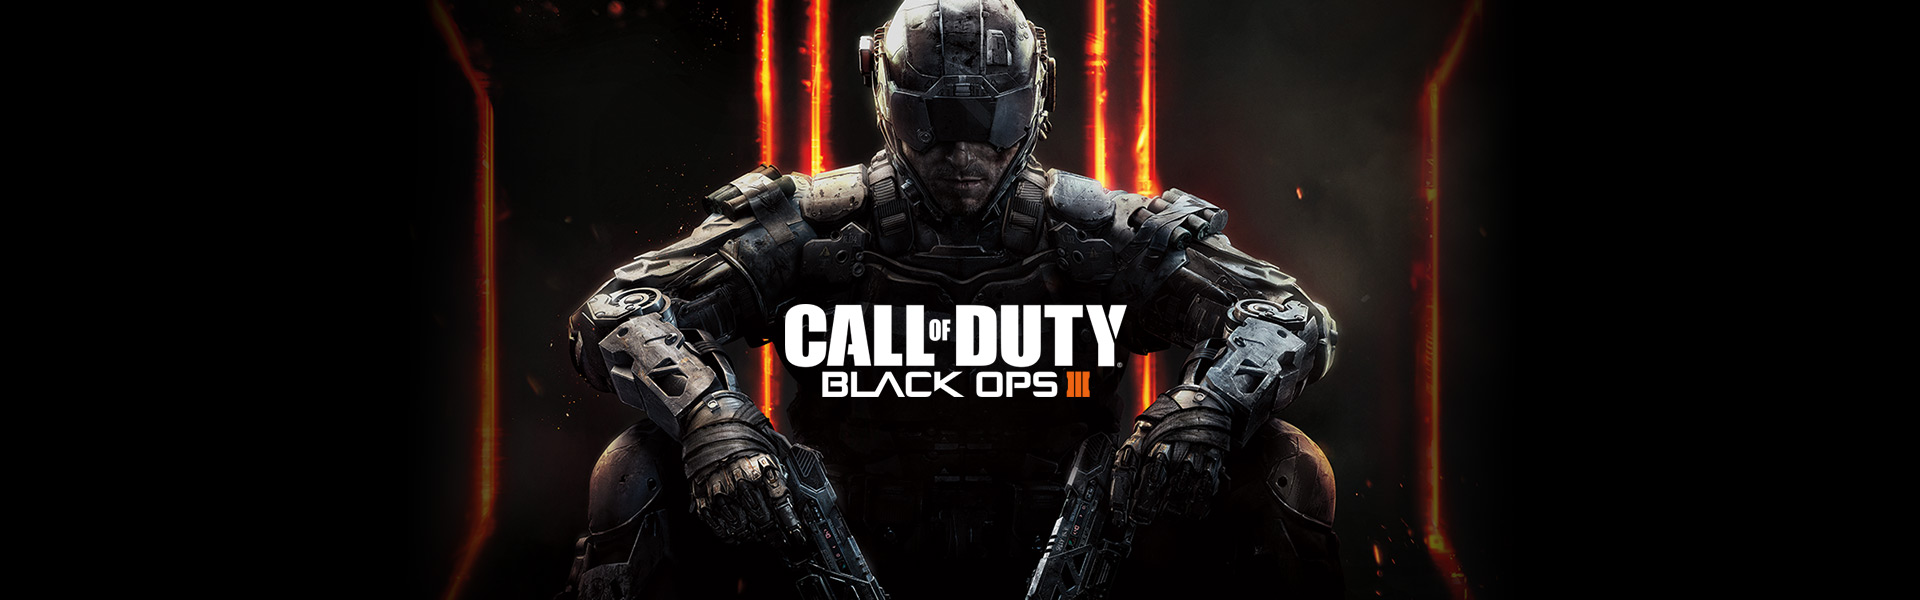 Call of Duty Black Ops 3 logo with futuristic looking soldier holding two pistols facing forward in background.